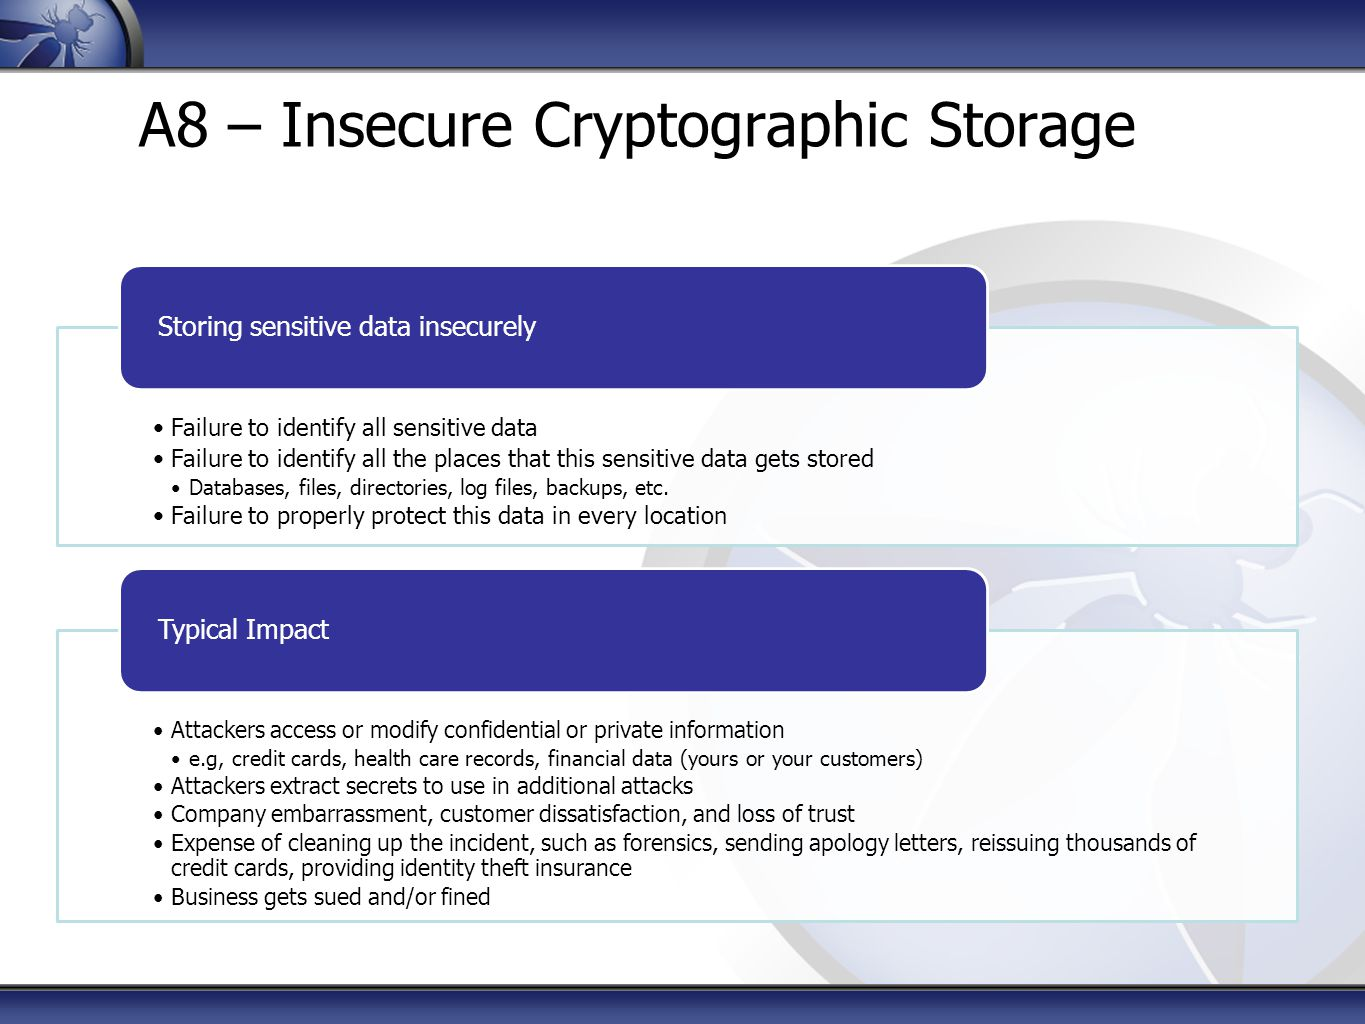 A8 – Insecure Cryptographic Storage Failure to identify all sensitive data Failure to identify all the places that this sensitive data gets stored Databases, files, directories, log files, backups, etc.